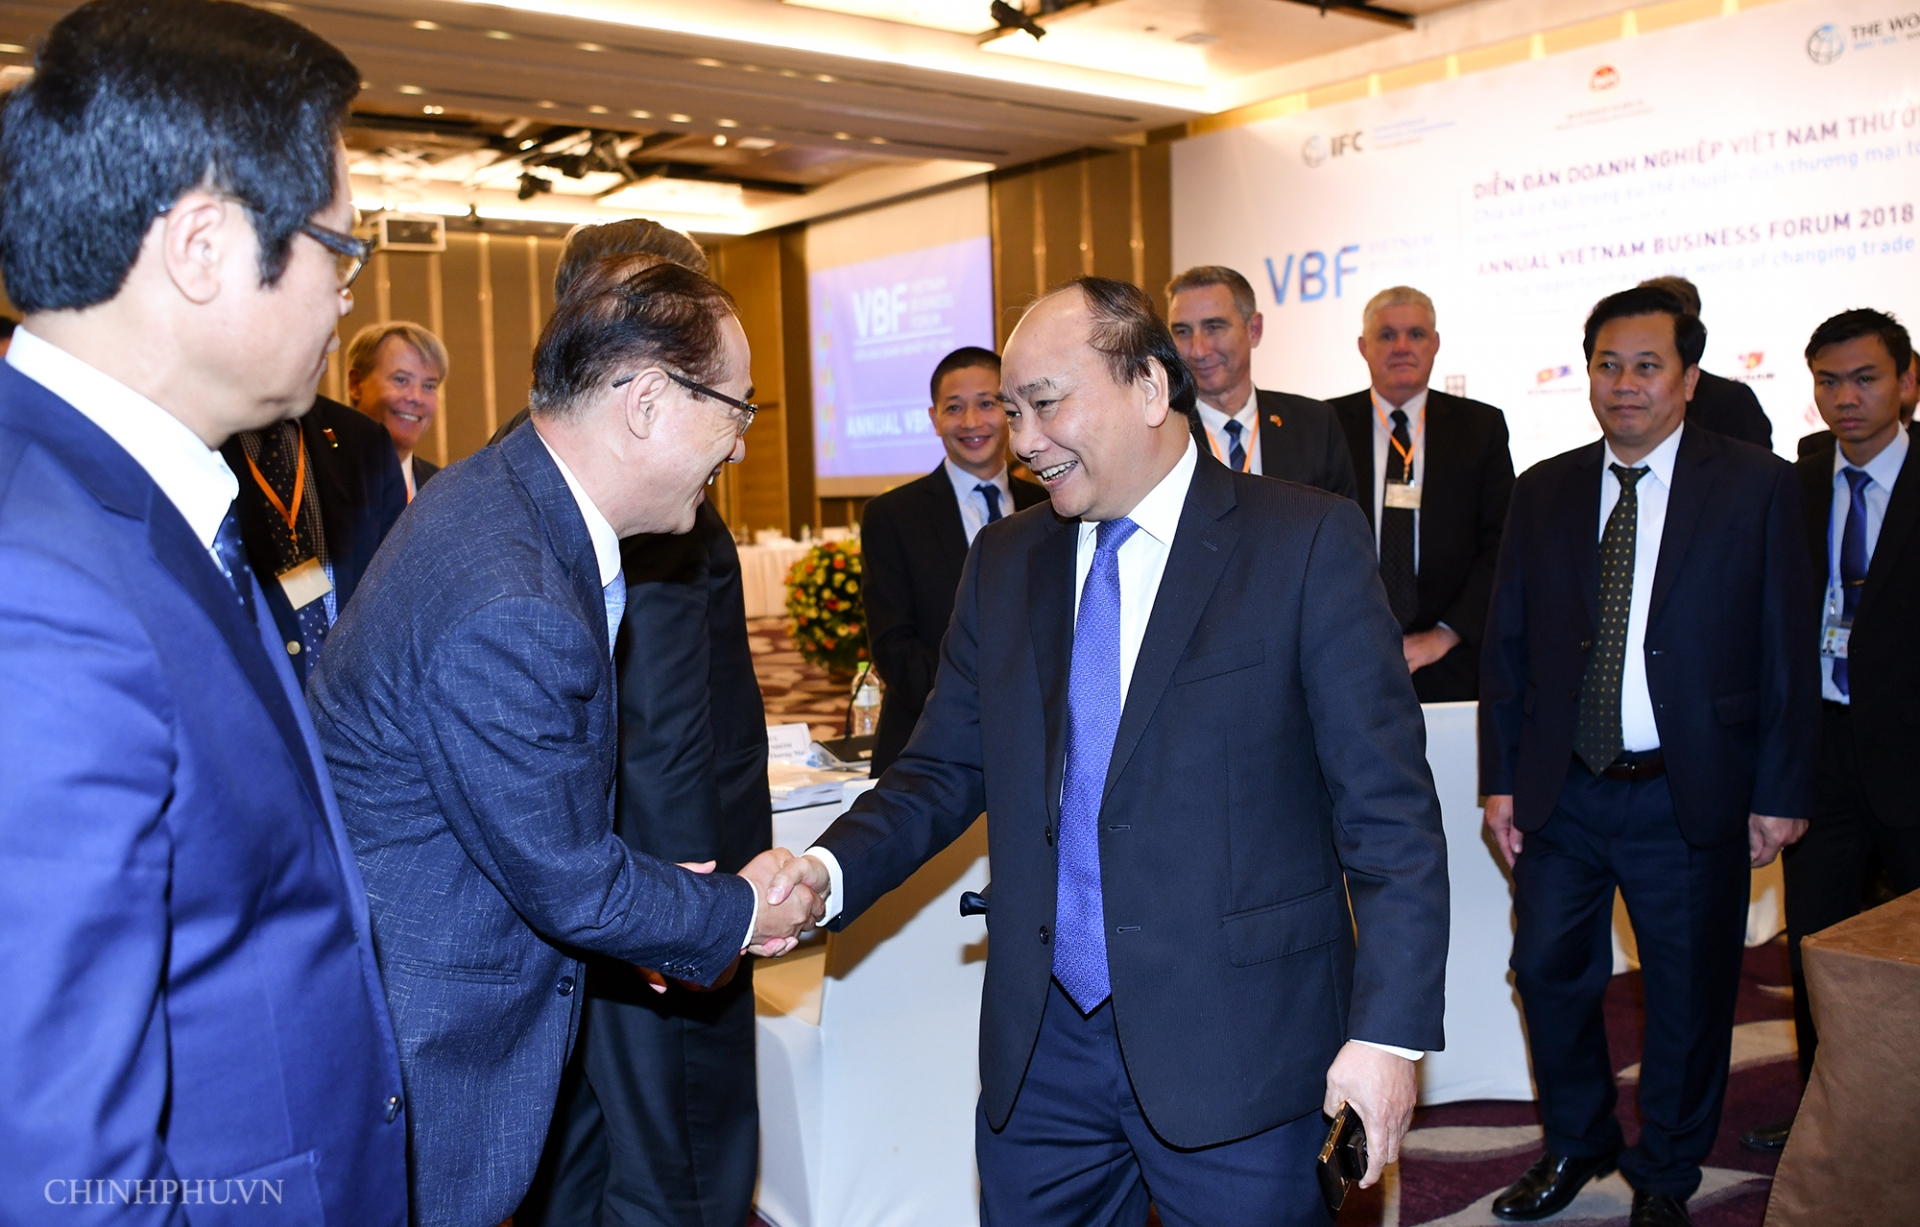 VBF 2018: Sharing opportunities in the world of changing trade